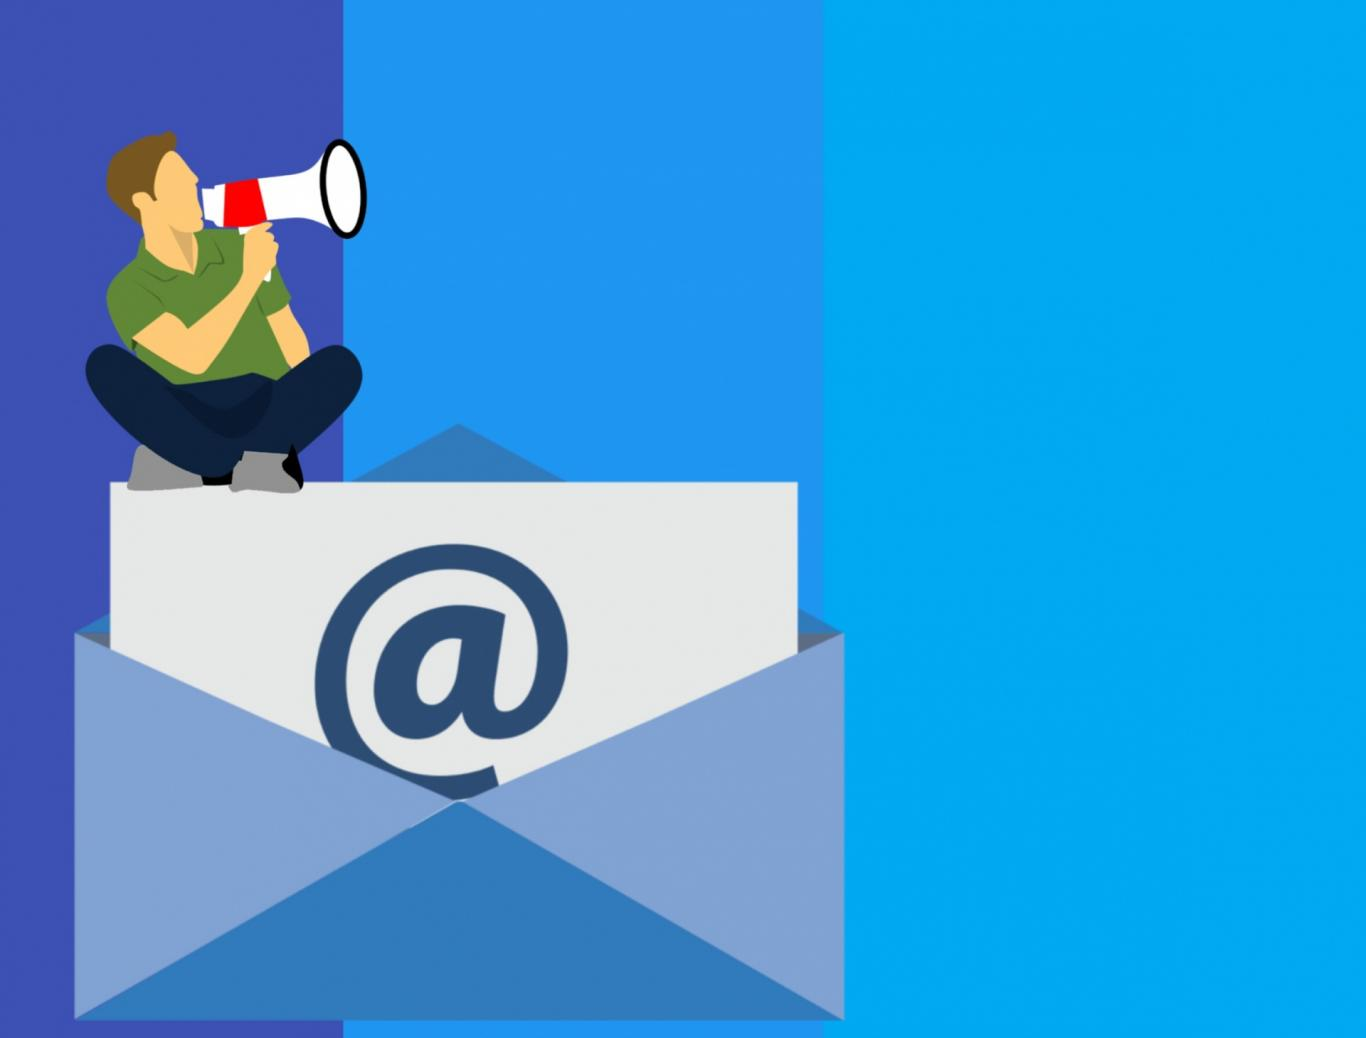 A vector style illustration of a man sitting on an email and shouting into a megaphone.